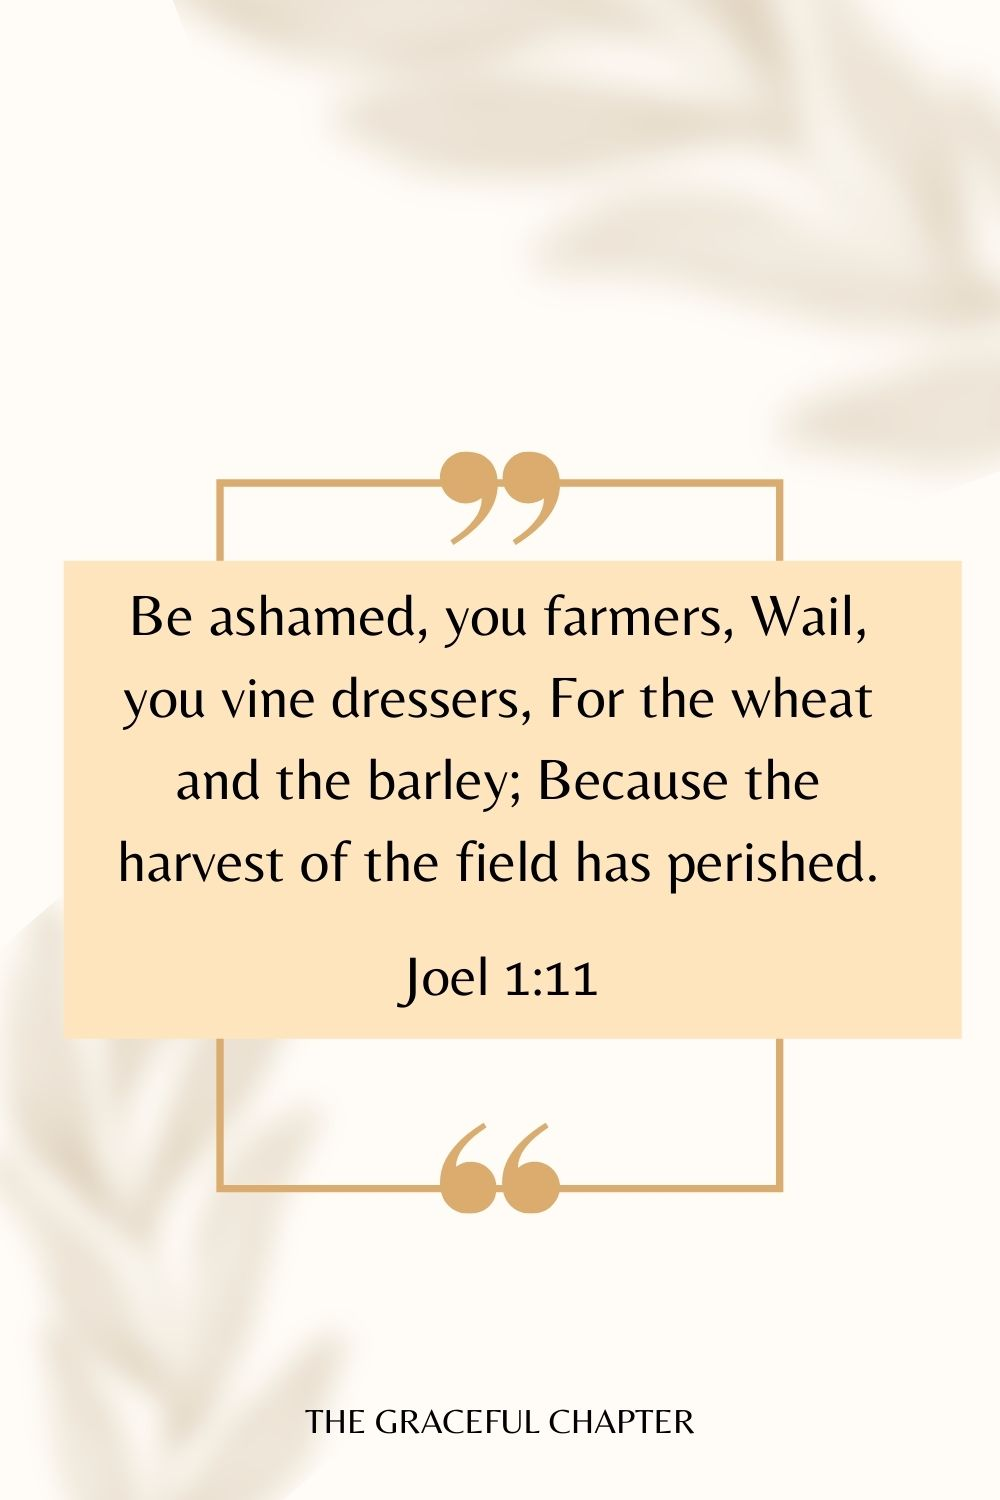 Be ashamed, you farmers, Wail, you vine dressers, For the wheat and the barley; Because the harvest of the field has perished. Joel 1:11